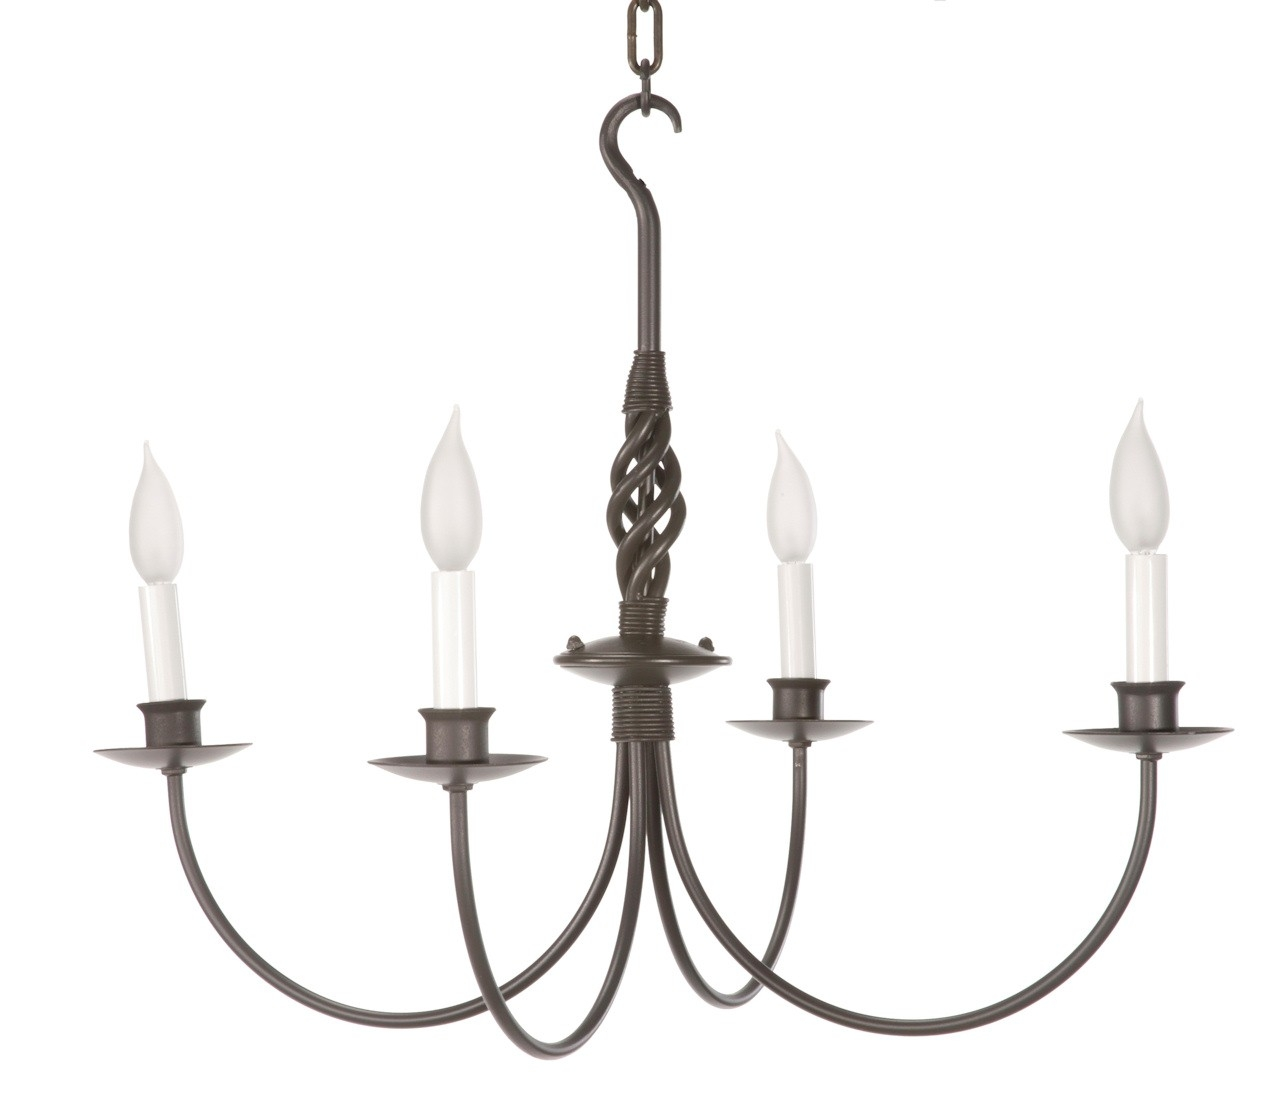 Fresh Black Wrought Iron Chandeliers Sale 20035 In Black Iron Chandeliers (#9 of 12)